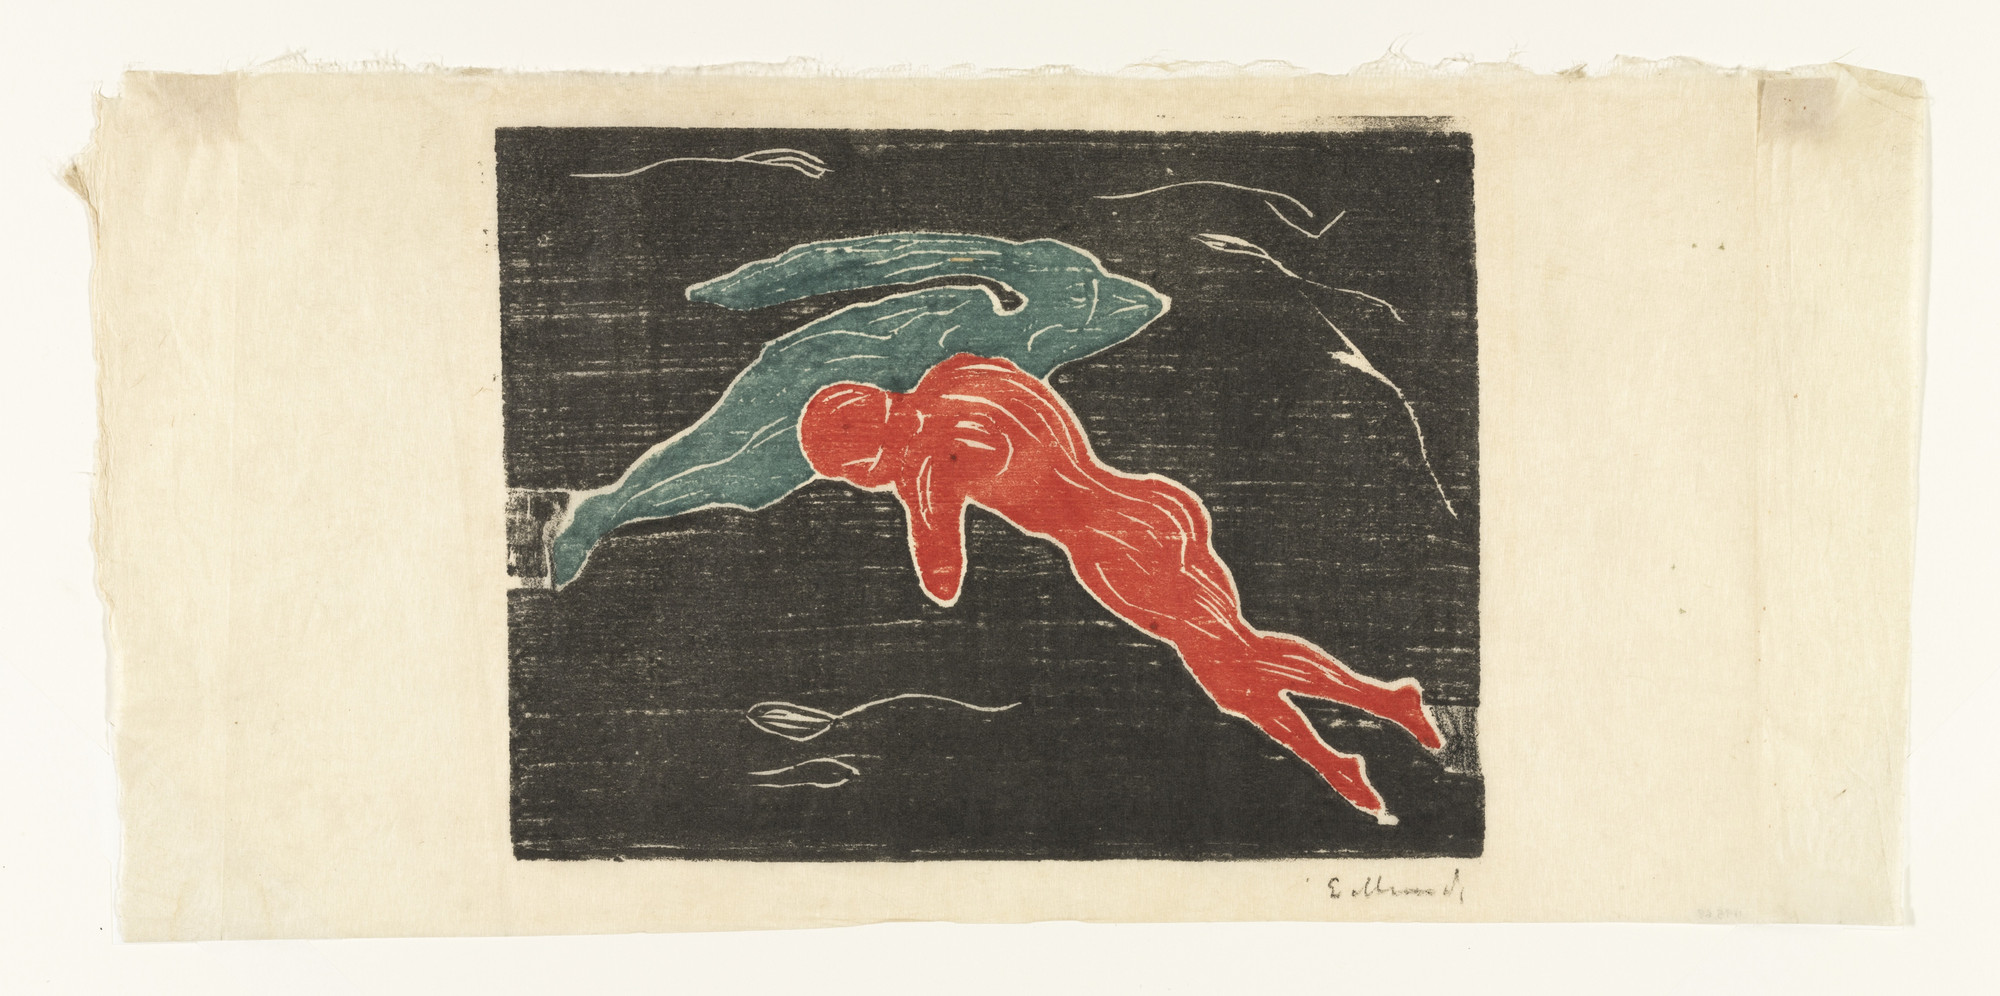 Edvard Munch. Encounter in Space (Møte i verdensrommet). 1898–99